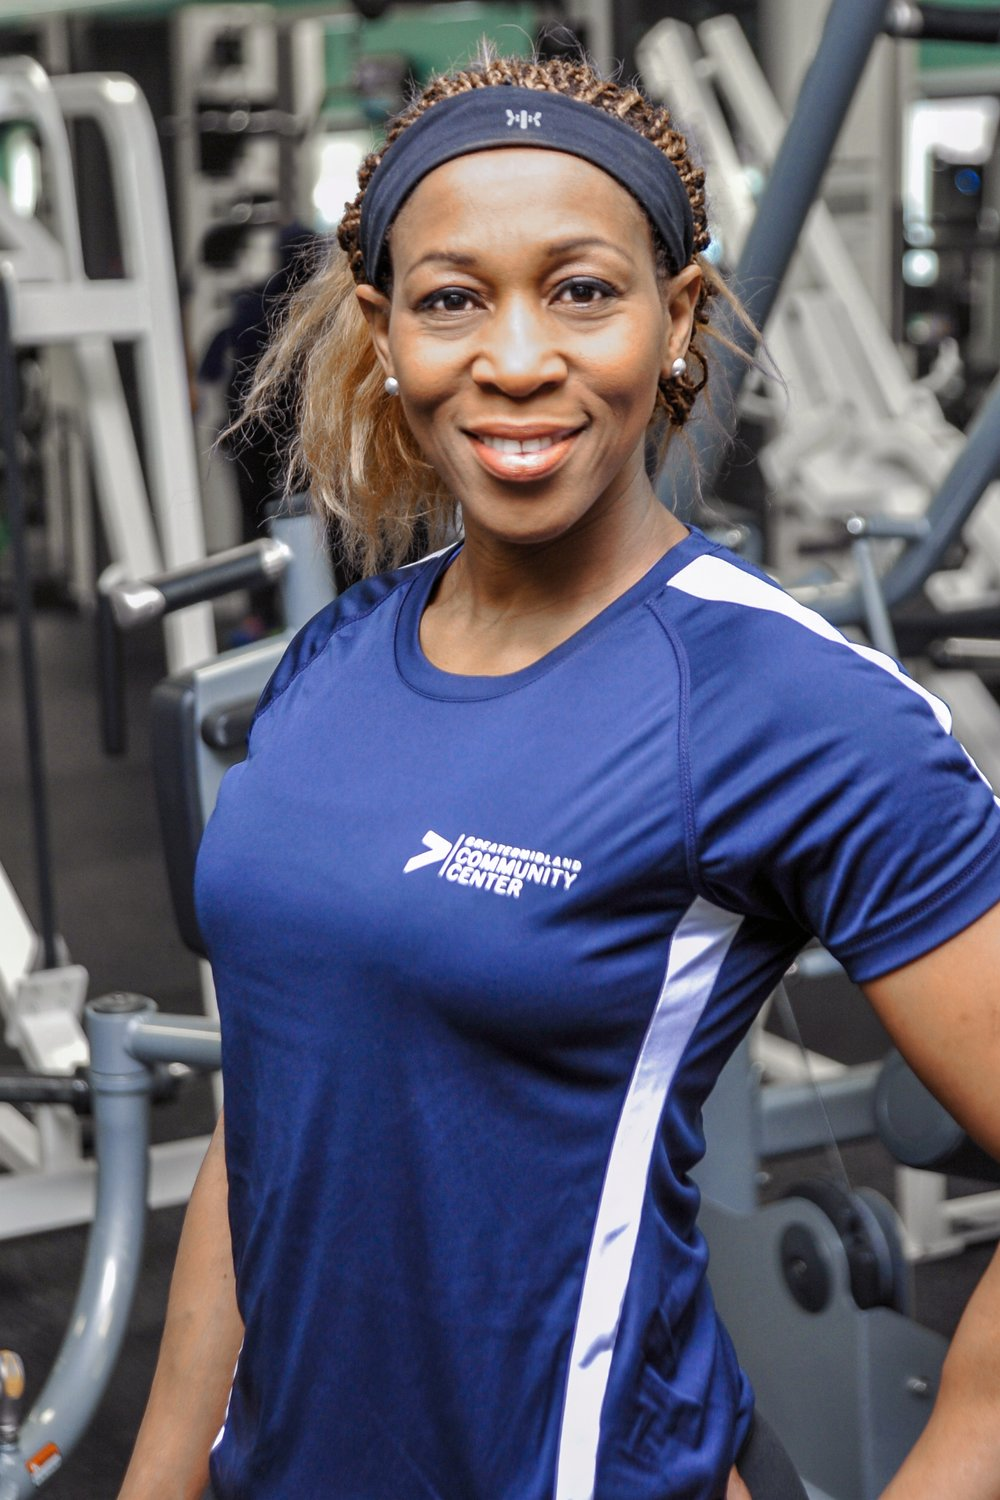 Personal trainers greater midland personal trainer xflitez Gallery